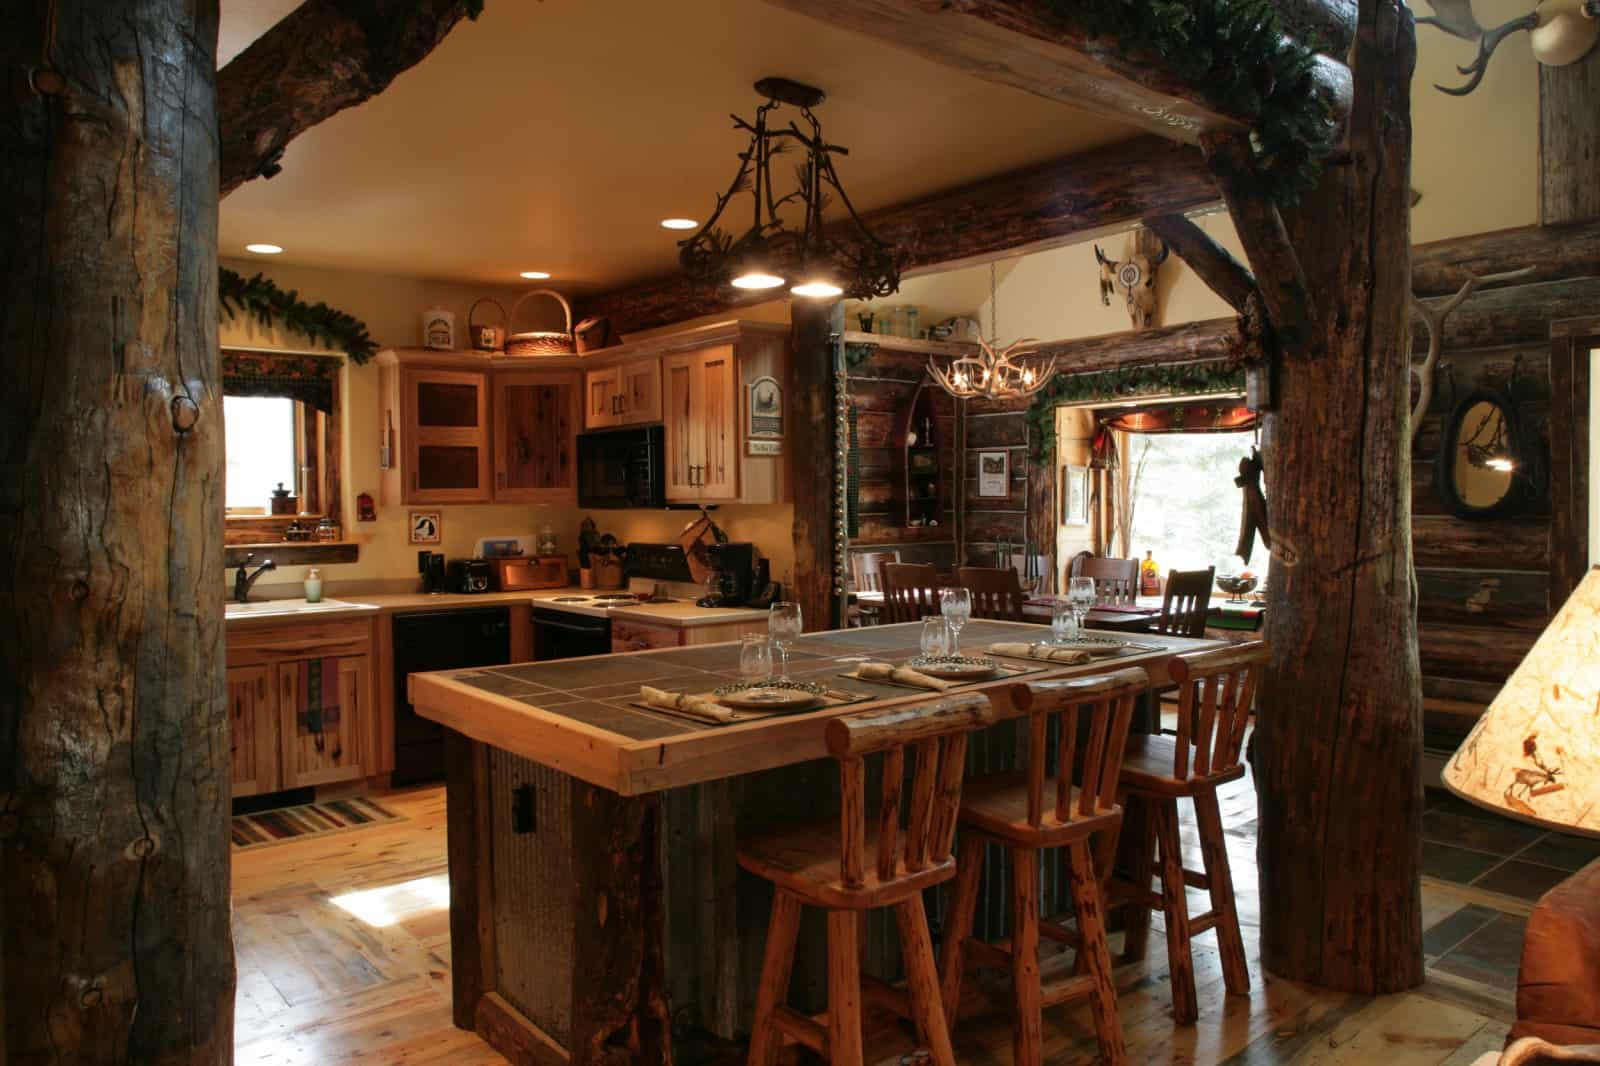 Interior design trends 2017 rustic kitchen decor for Northwoods decor